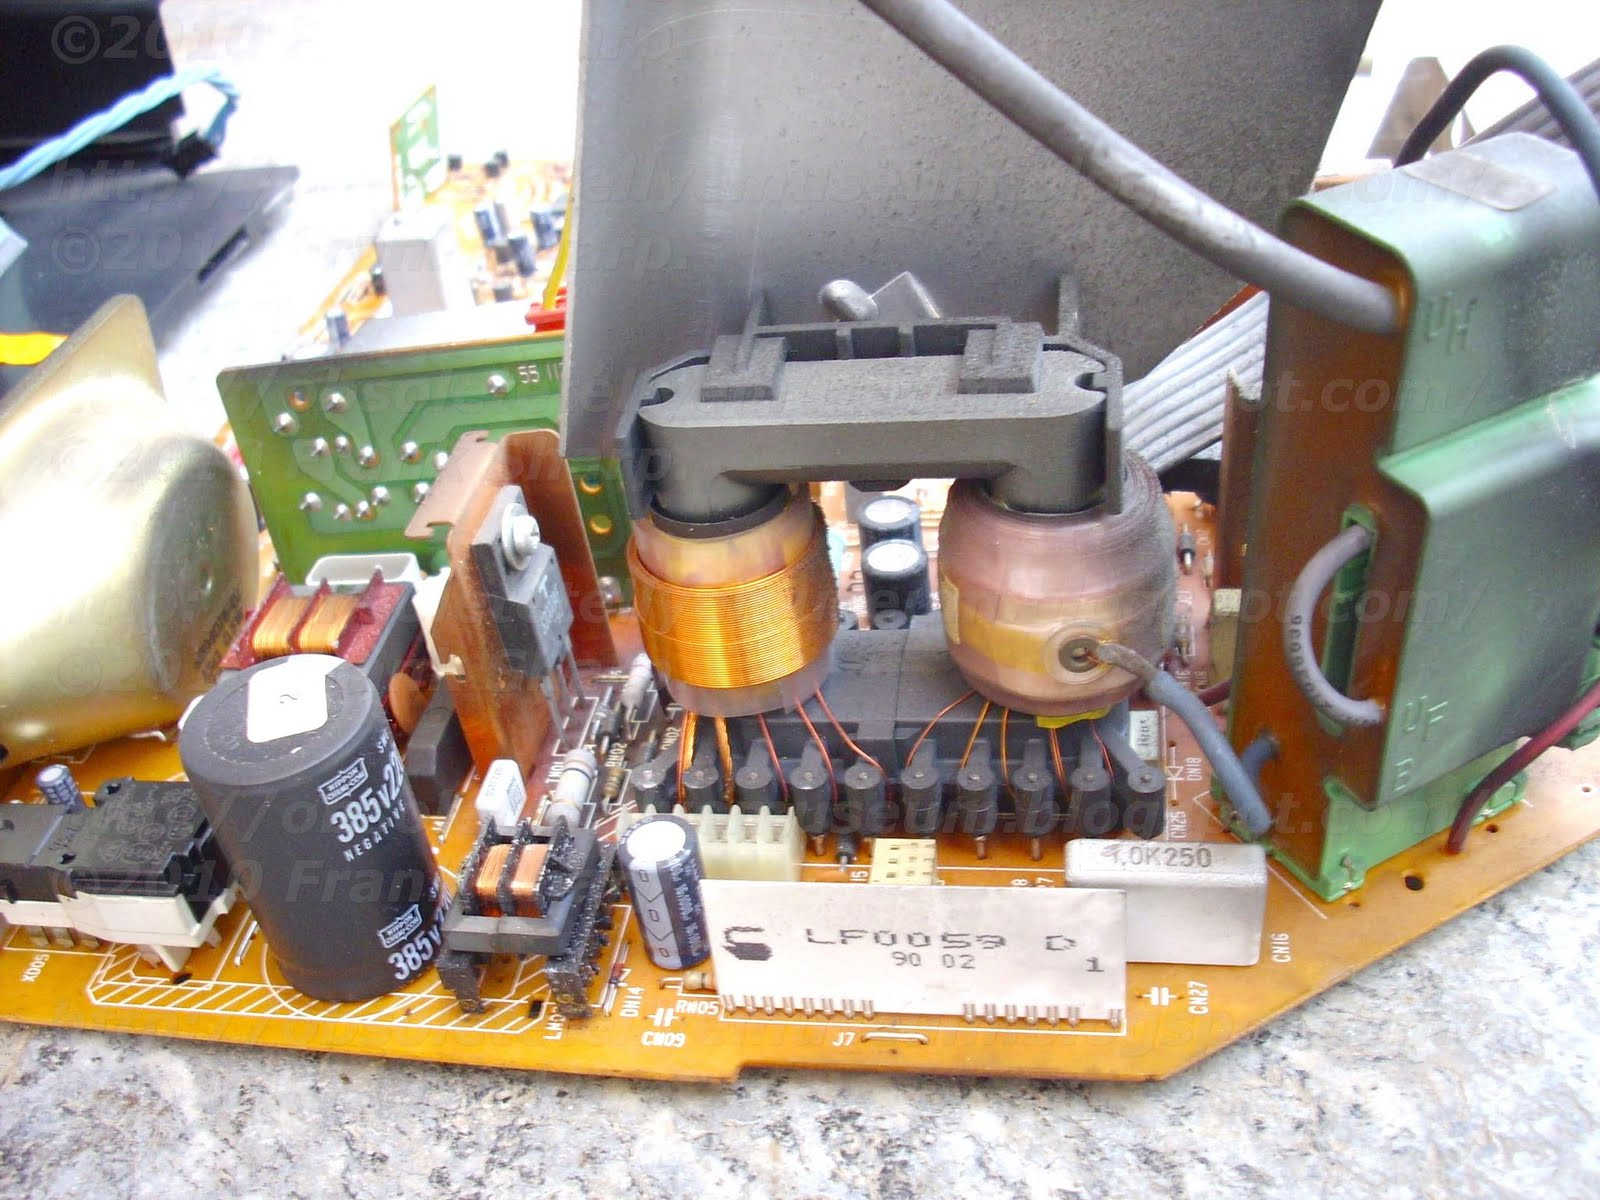 Obsolete Technology Tellye Salora 15l30 Type L30a Chassis L Negative Pulse Will Provide A On Off Output Regulated Power Supply For Television Receiver Includes Transformer Having Primary Winding Coupled To Source Of Unregulated Voltage